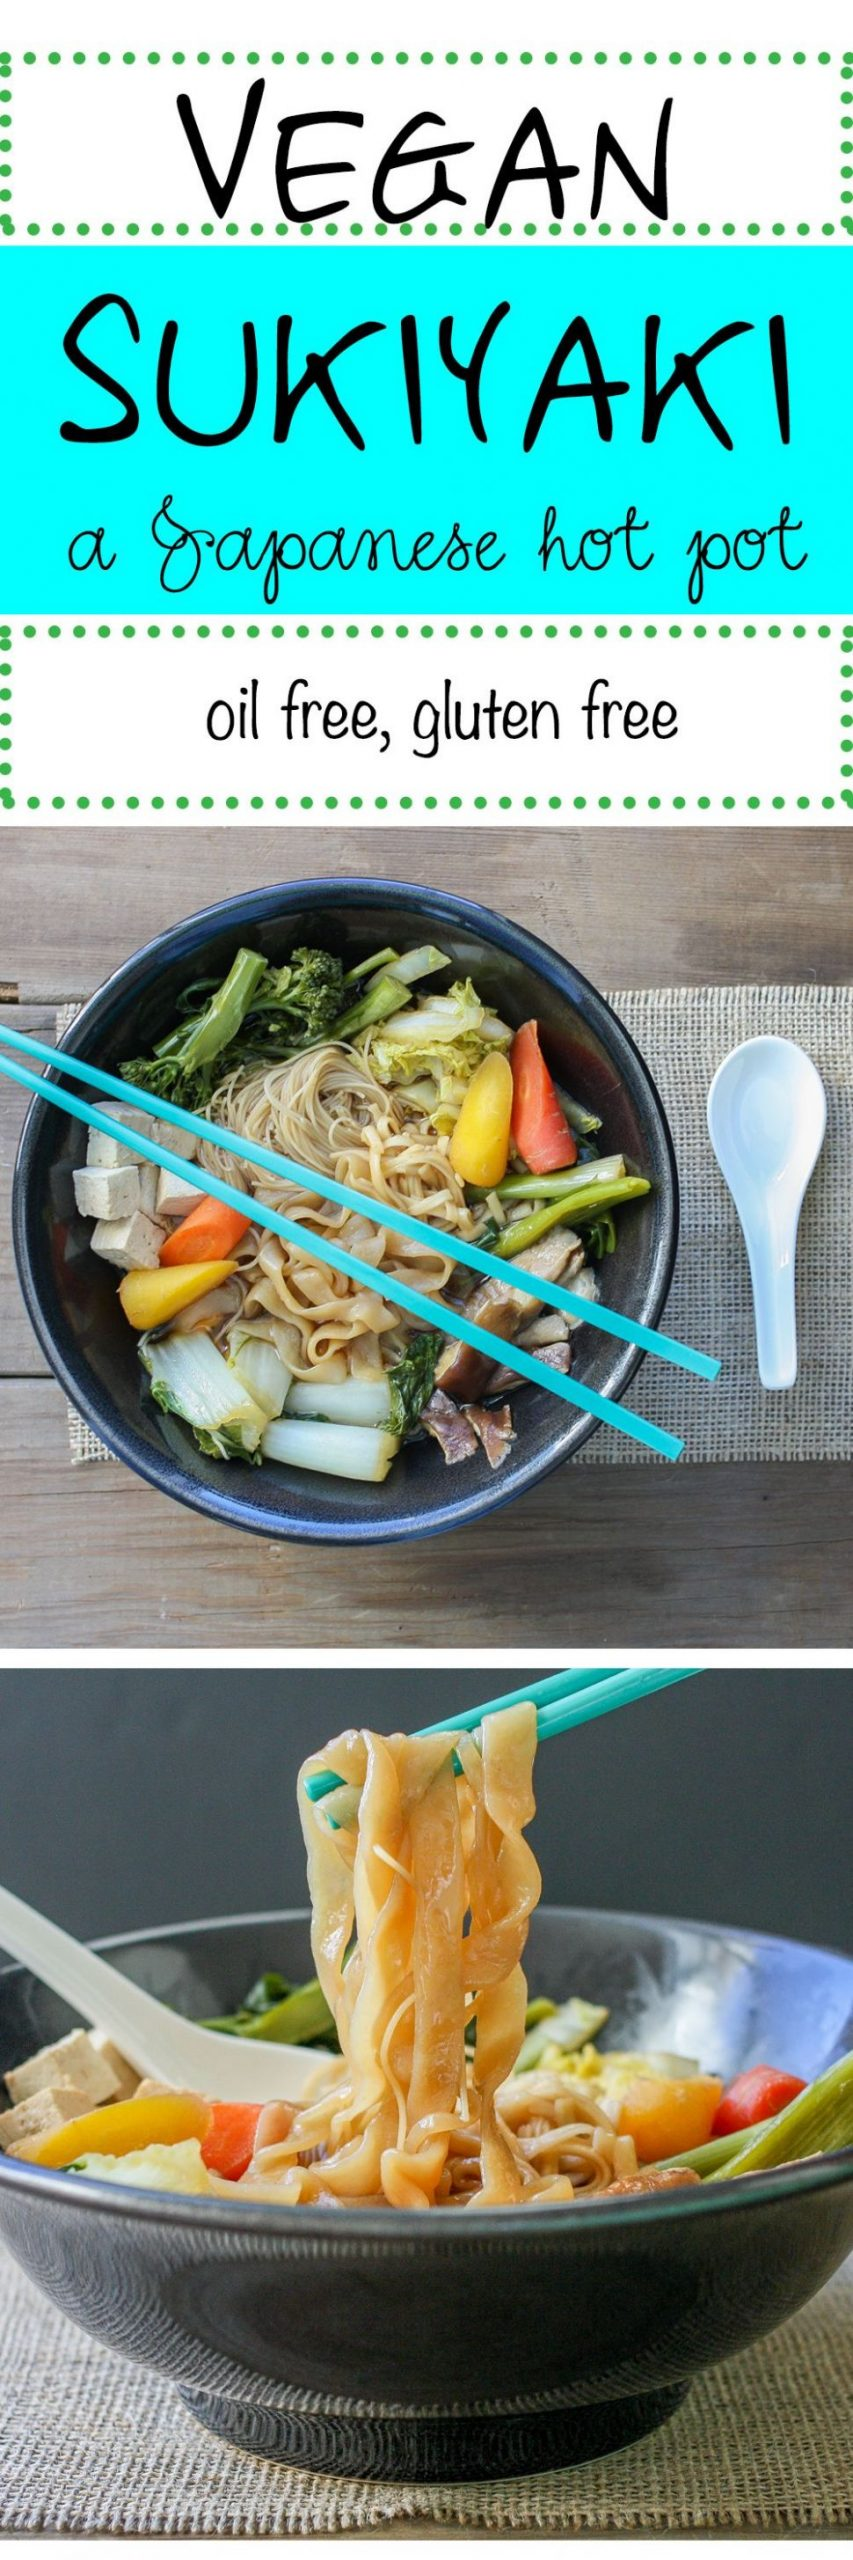 Vegan Sukiyaki, A Japanese Hot Pot - Vegetarian Recipes Japanese Food